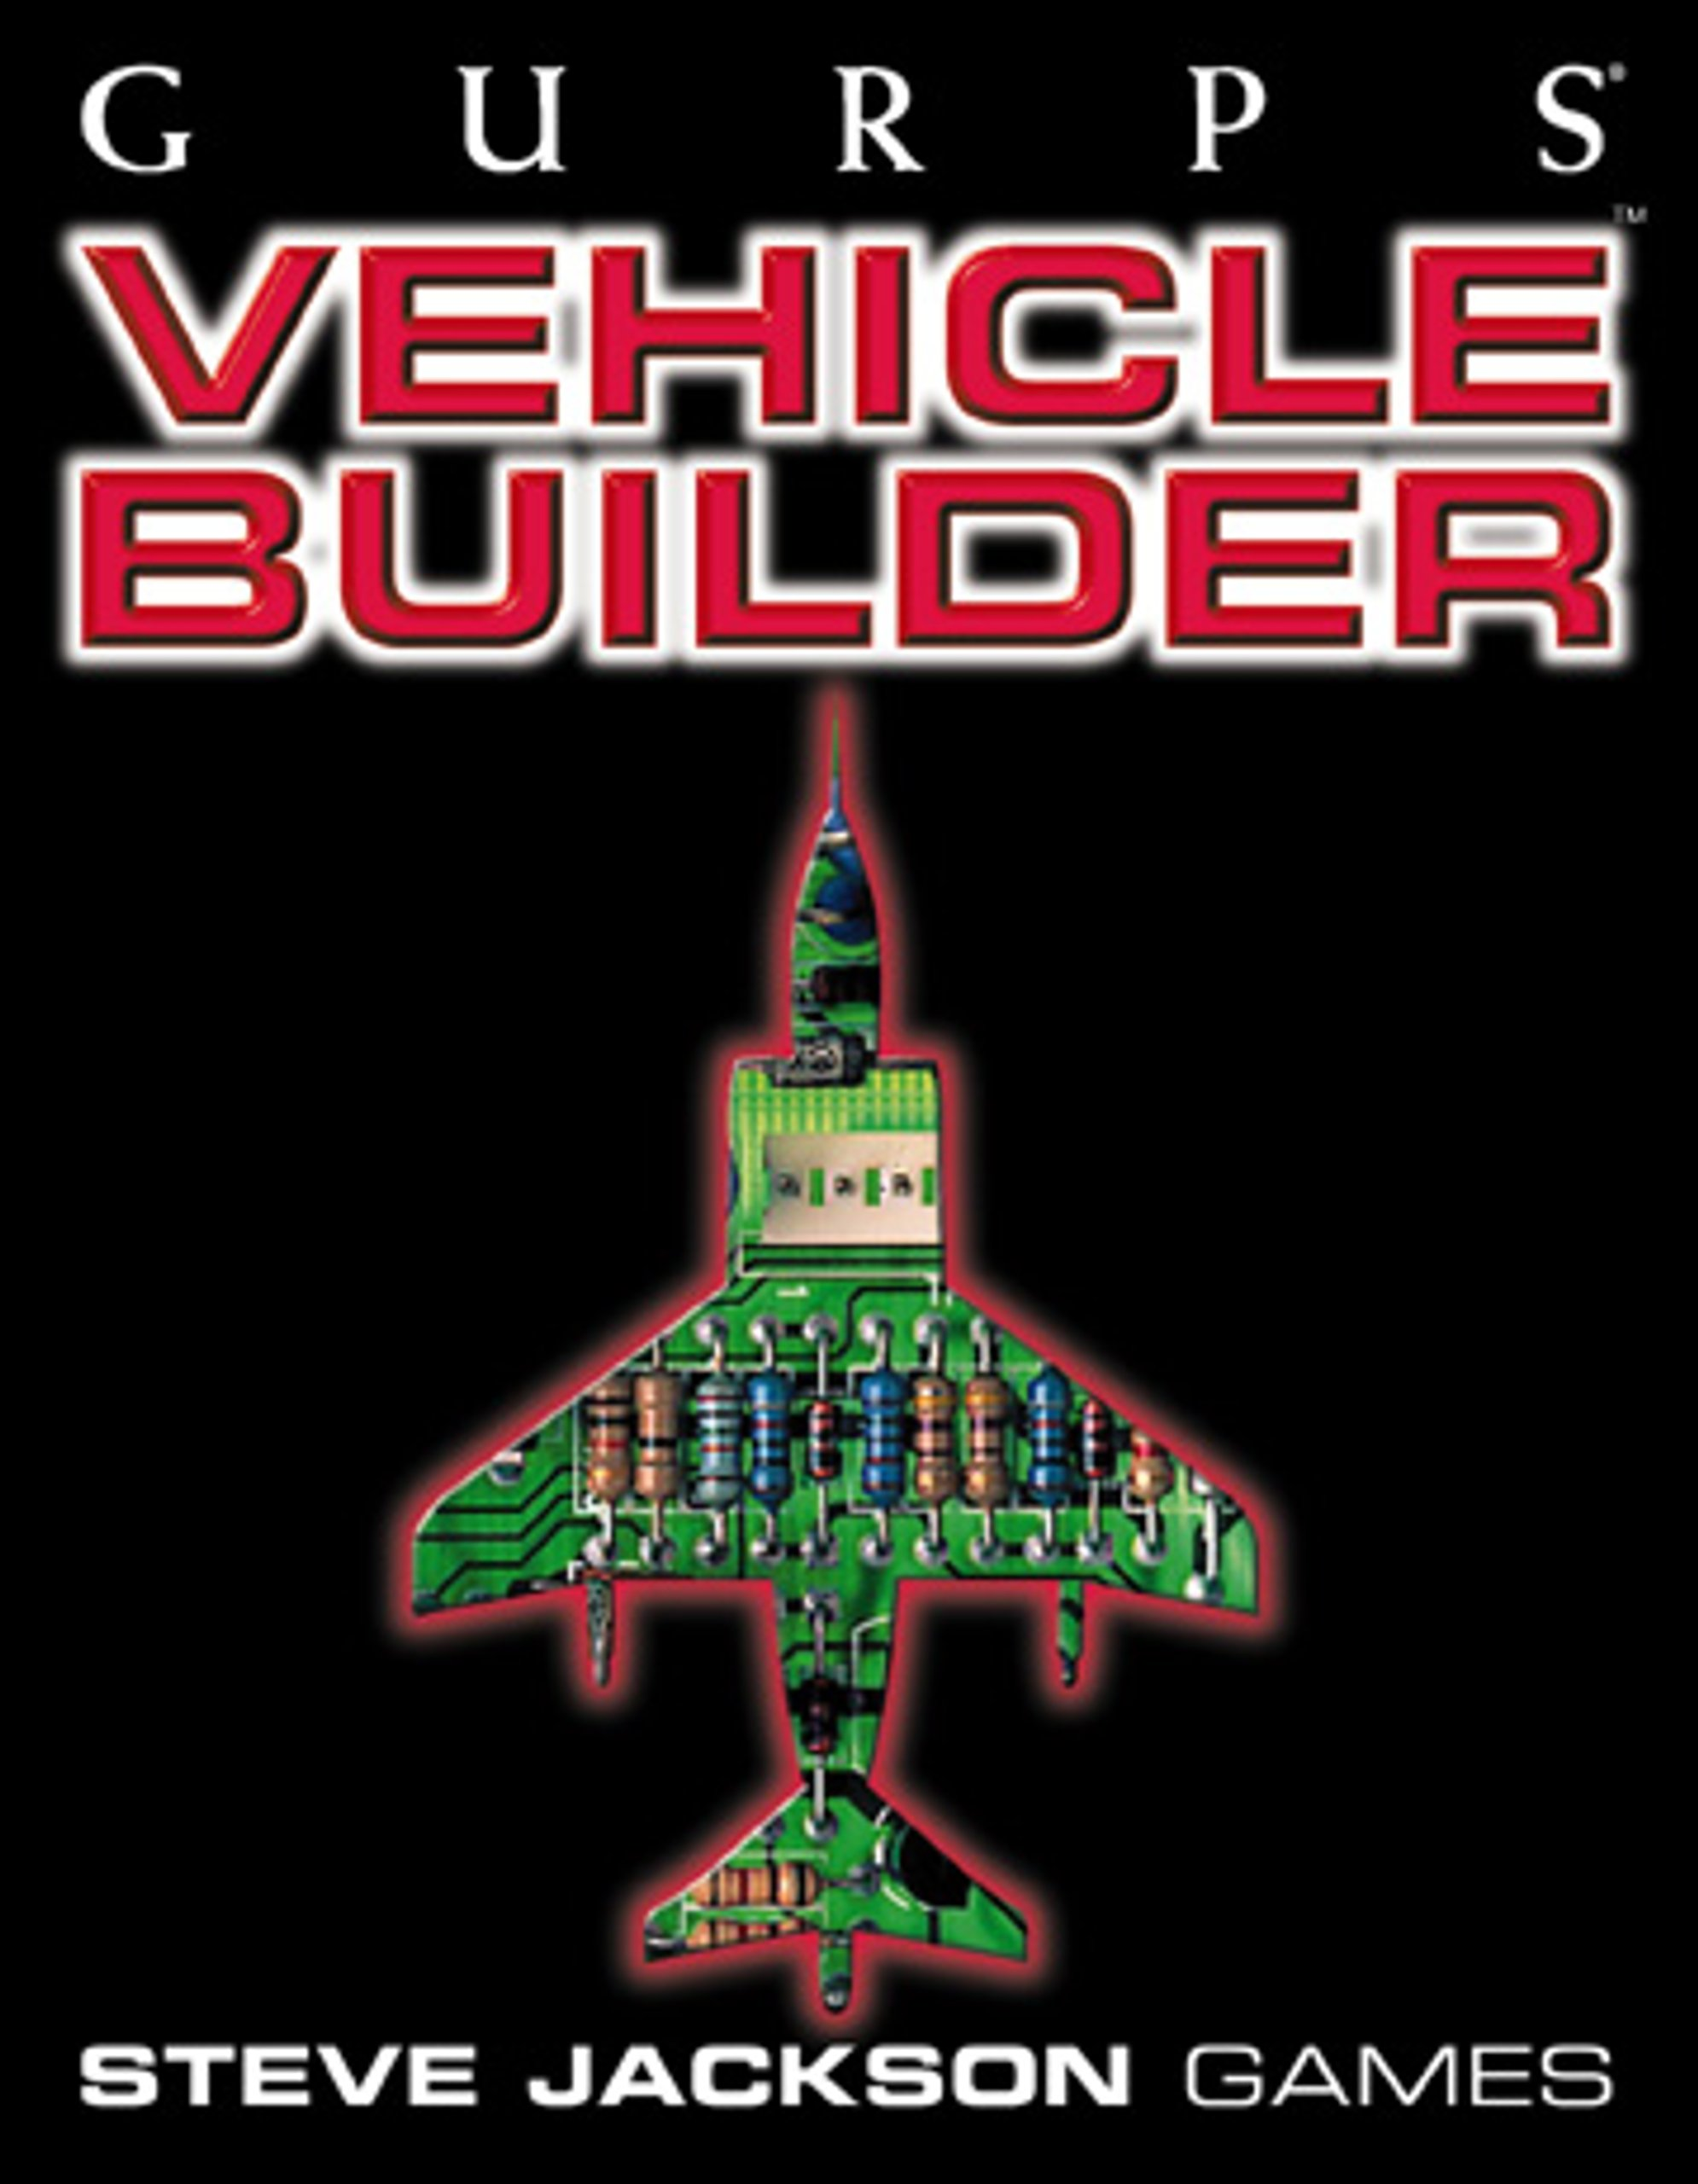 GURPS Vehicle Builder (Gurps S)